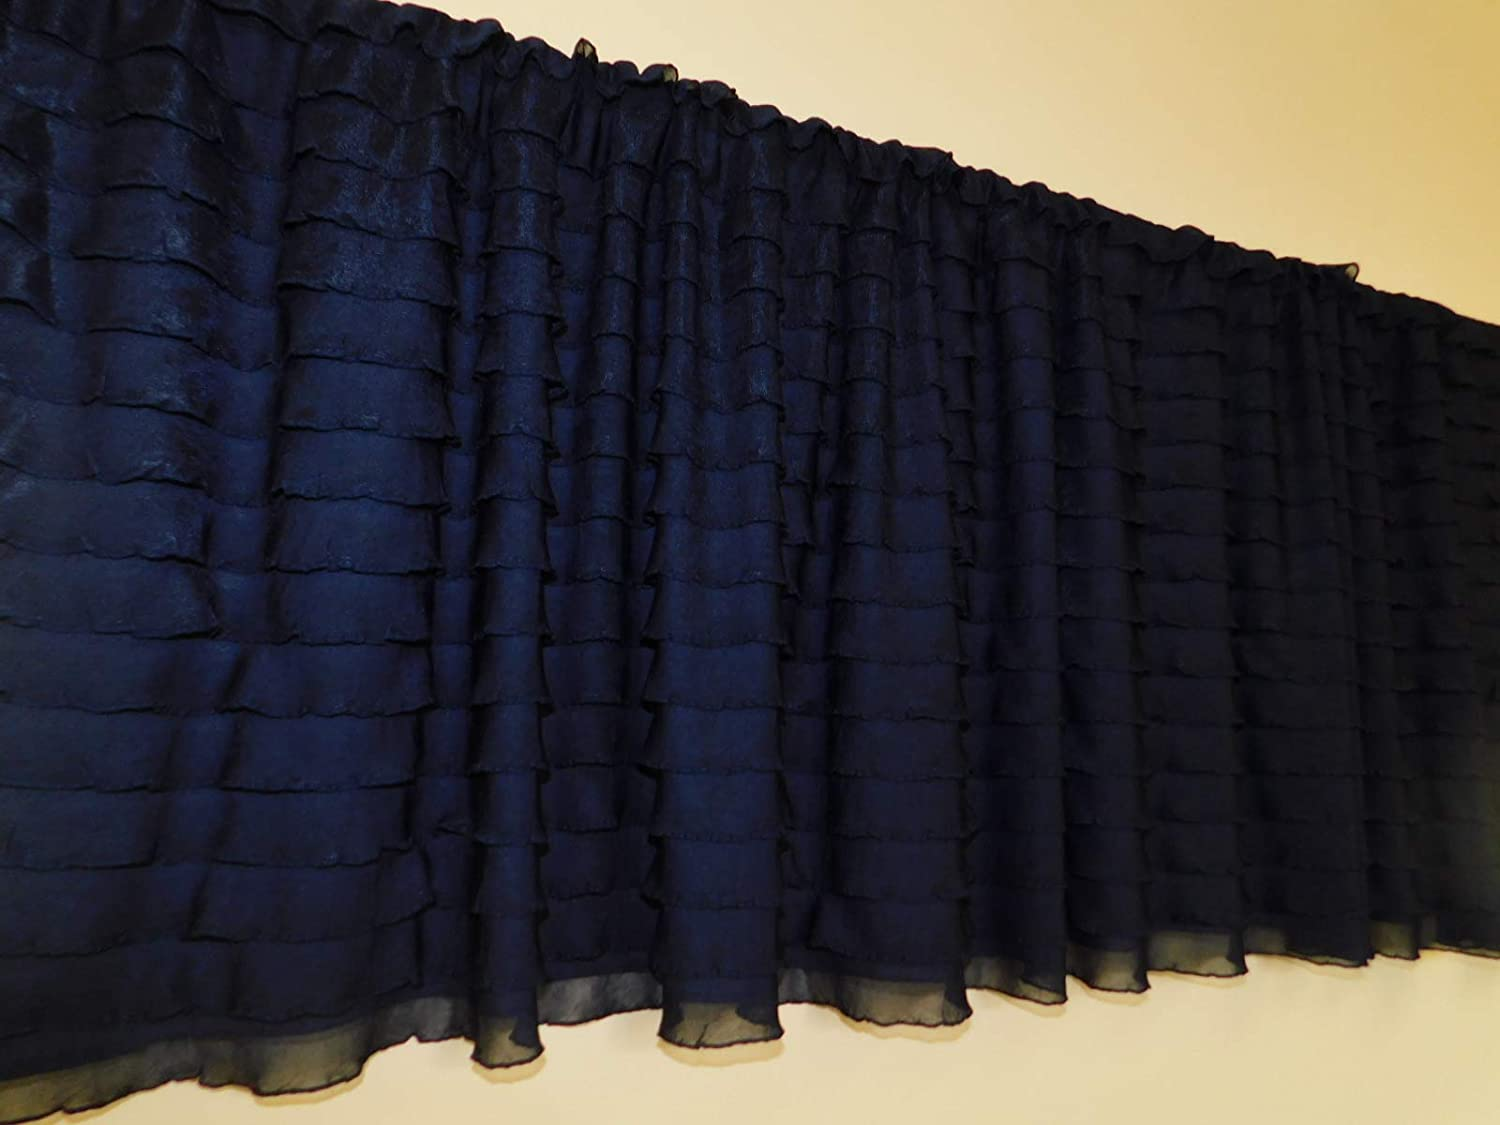 Ruffled Navy Blue Ruffled Curtain Valance - Cascading Ruffle Window Treatment, Baby Girls Nursery valance - Gathered layers, Kitchen Valance, Shabby chic, Princess, ballerina, Home window decor